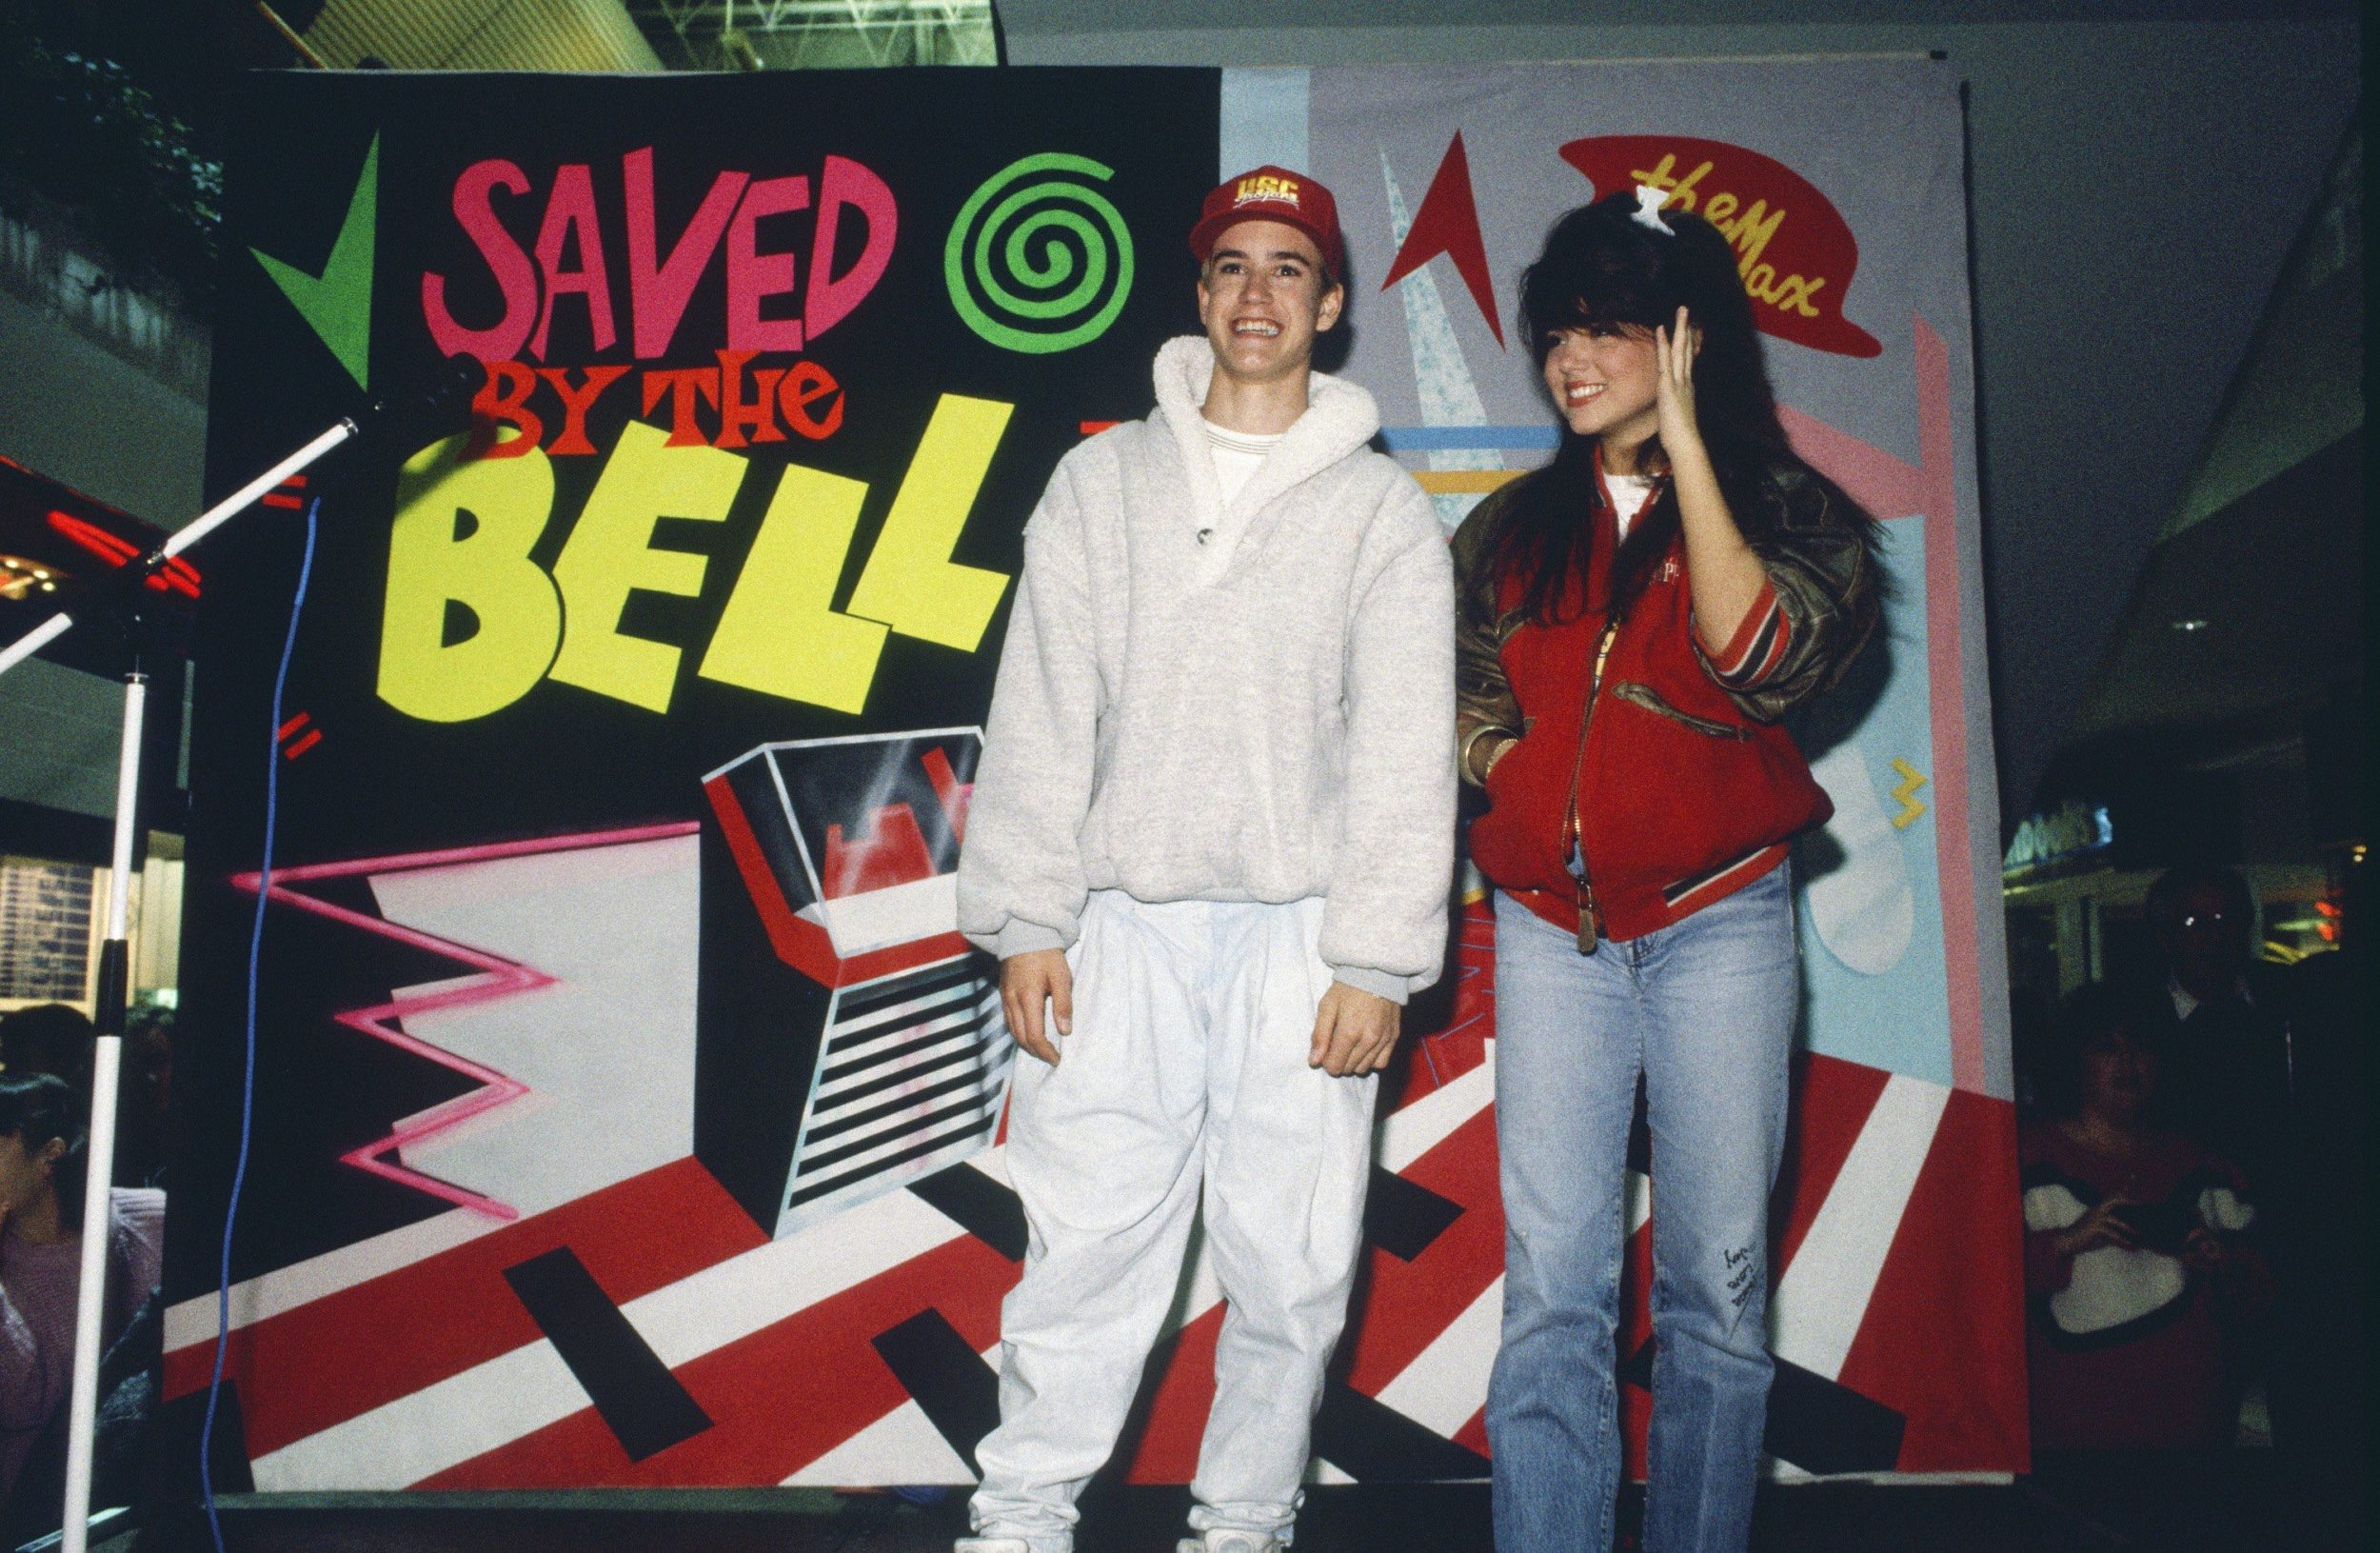 Tiffani Thiessen's friendship with Mark-Paul Gosselaar will make you super nostalgic for <em>Saved By the Bell</em>